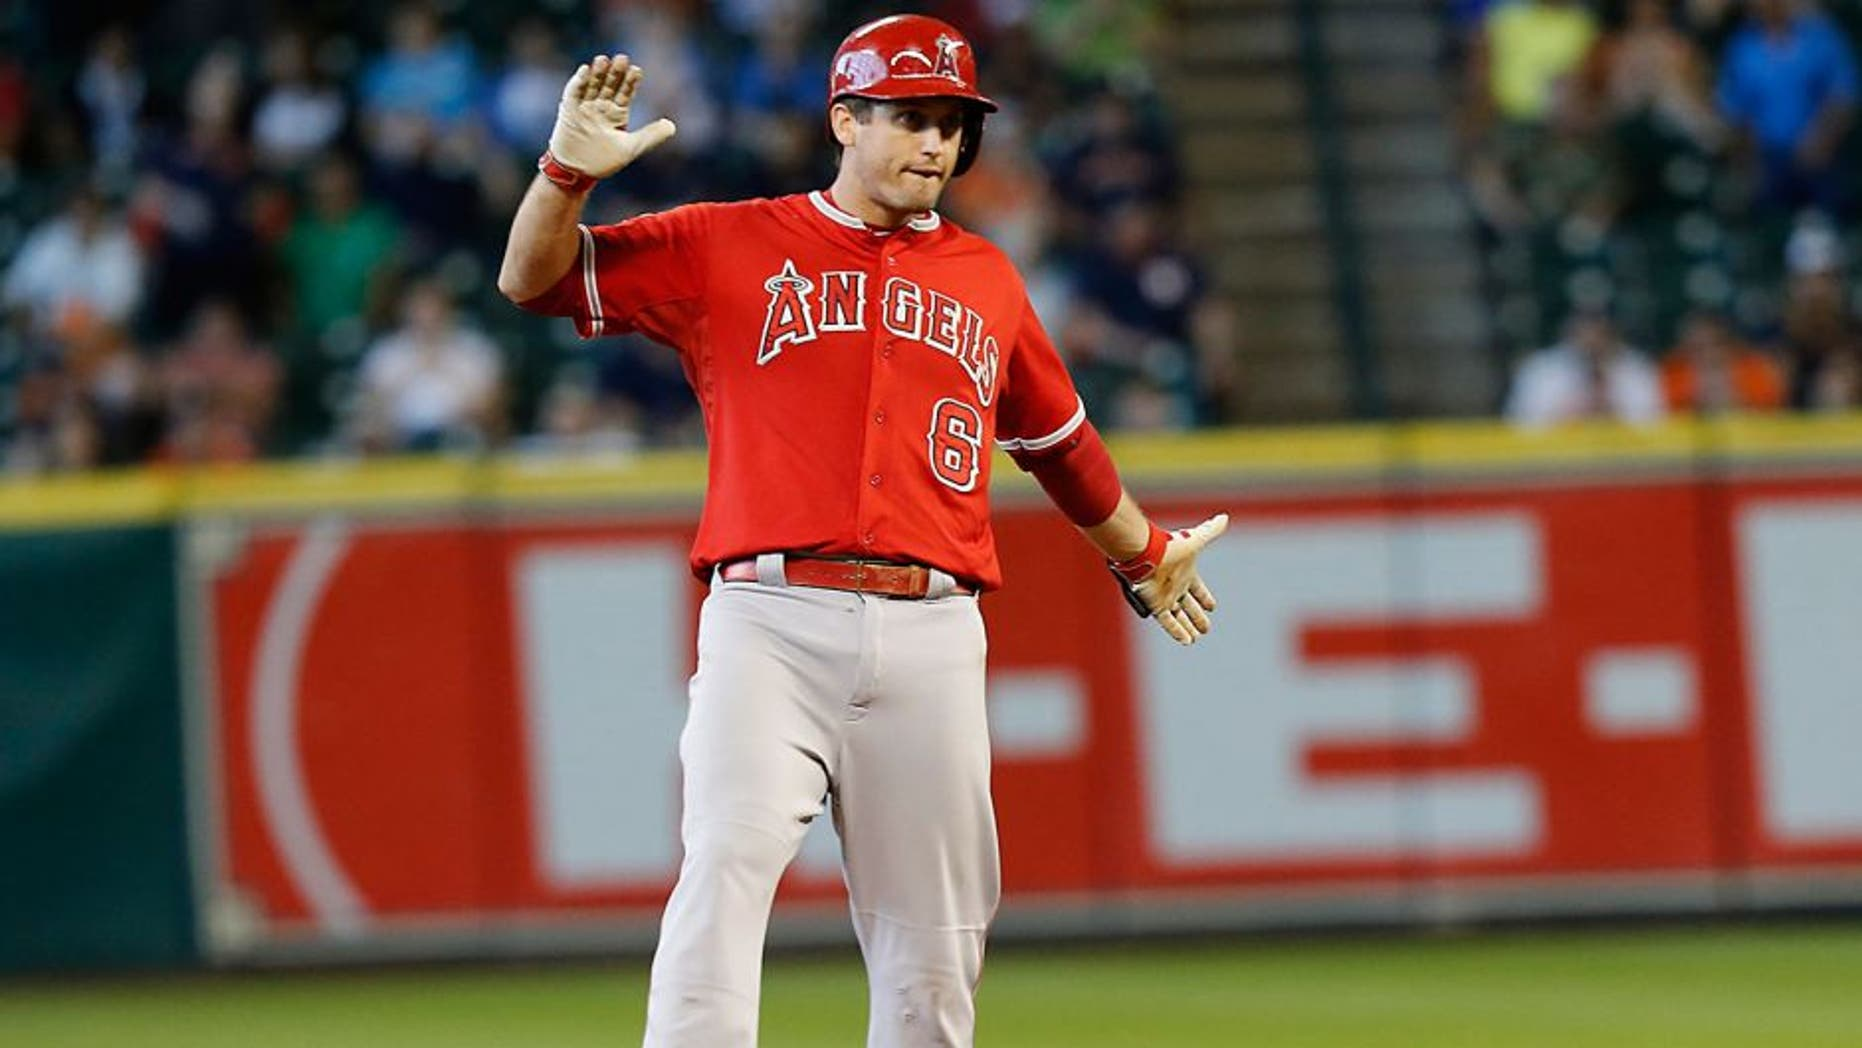 Sep 23, 2015; Houston, TX, USA; Los Angeles Angels third baseman David Freese (6) reacts after hitting a two run RBI double against the Houston Astros in the eighth inning at Minute Maid Park. Mandatory Credit: Thomas B. Shea-USA TODAY Sports